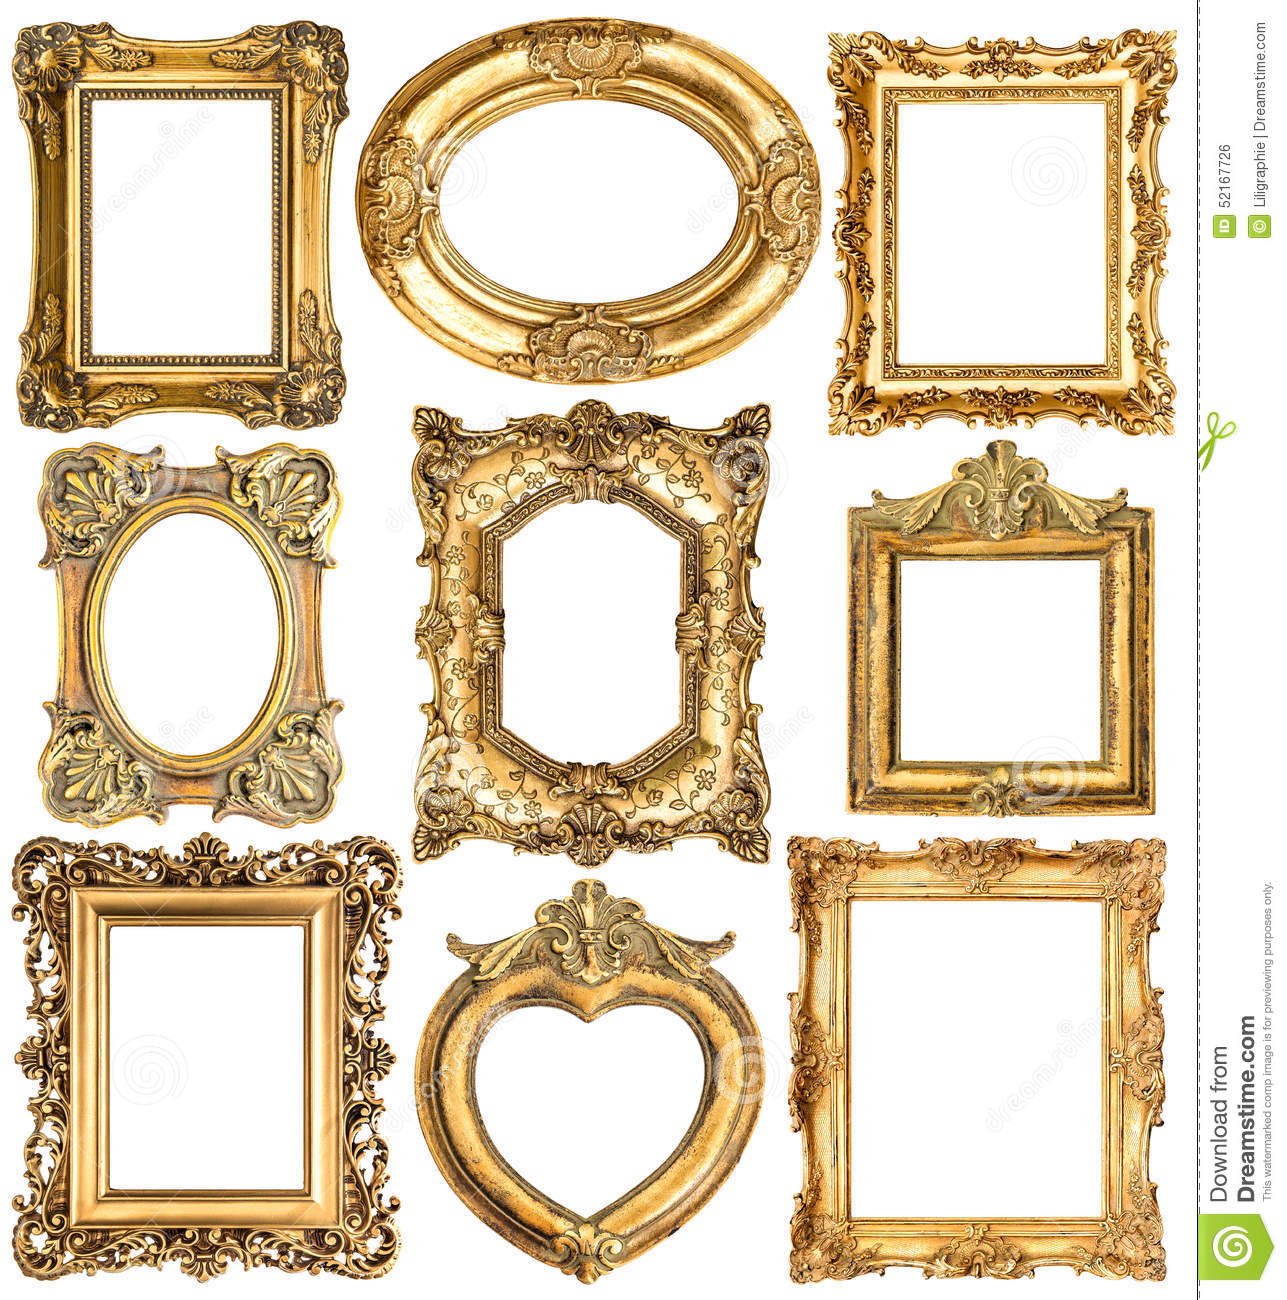 Golden Frames Baroque Style Antique Objects Stock Photo Image Of